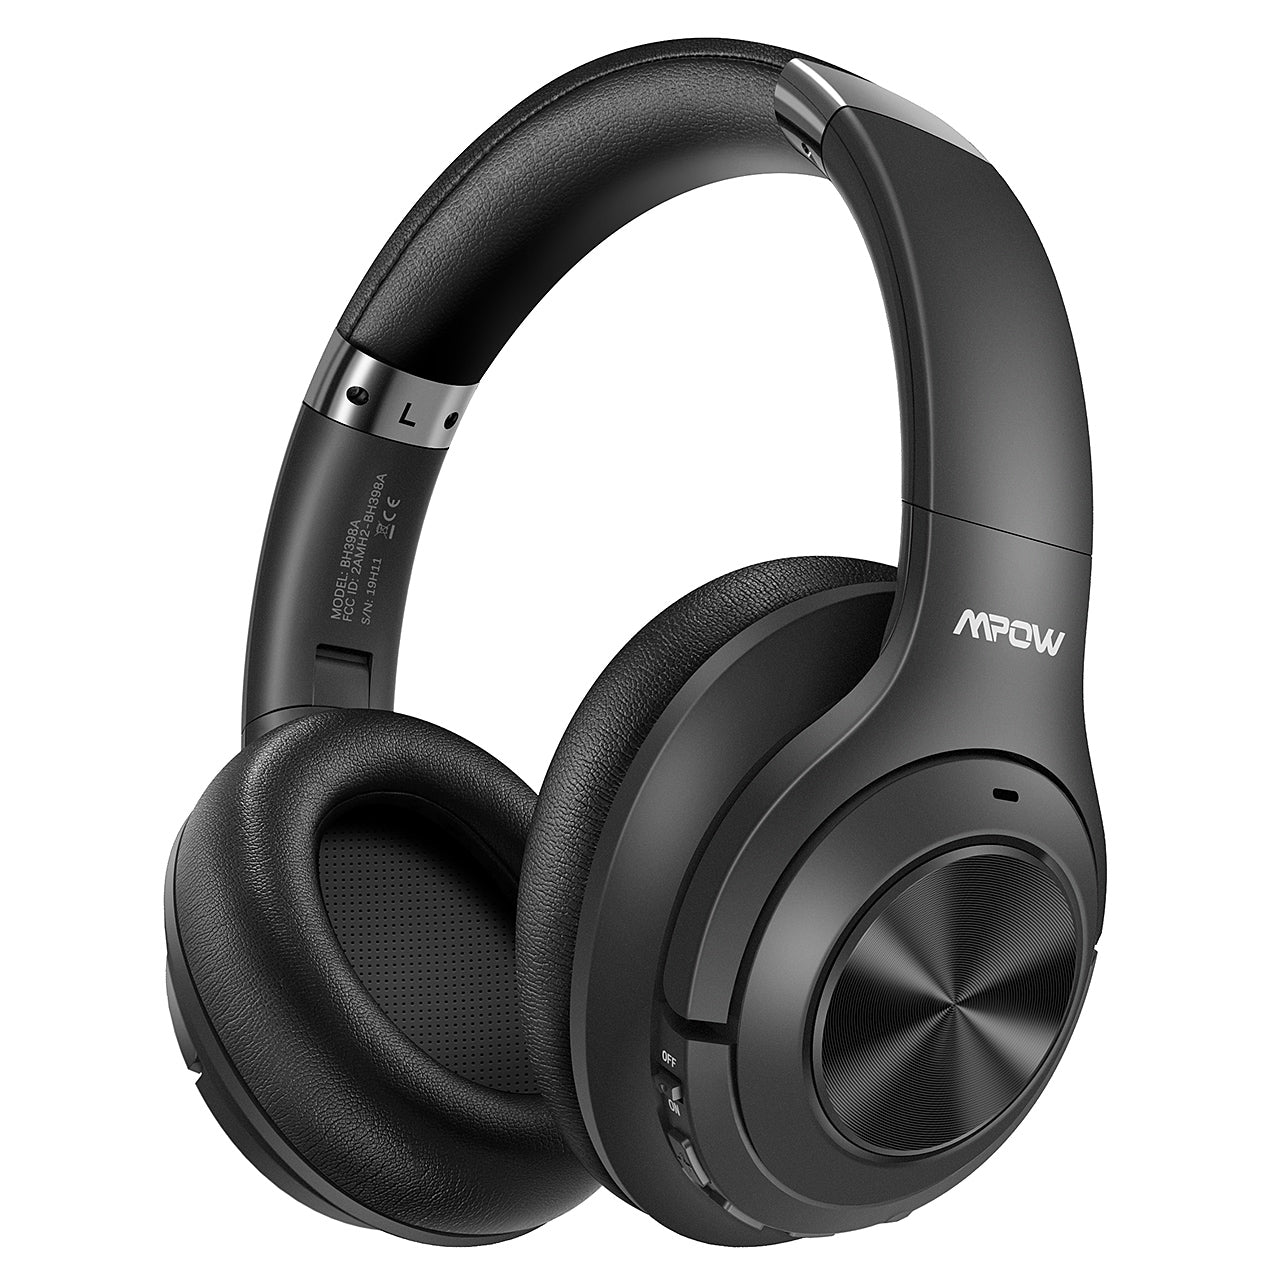 [65Hrs Playtime] Mpow H21 Hybrid Noise Cancelling Headphones